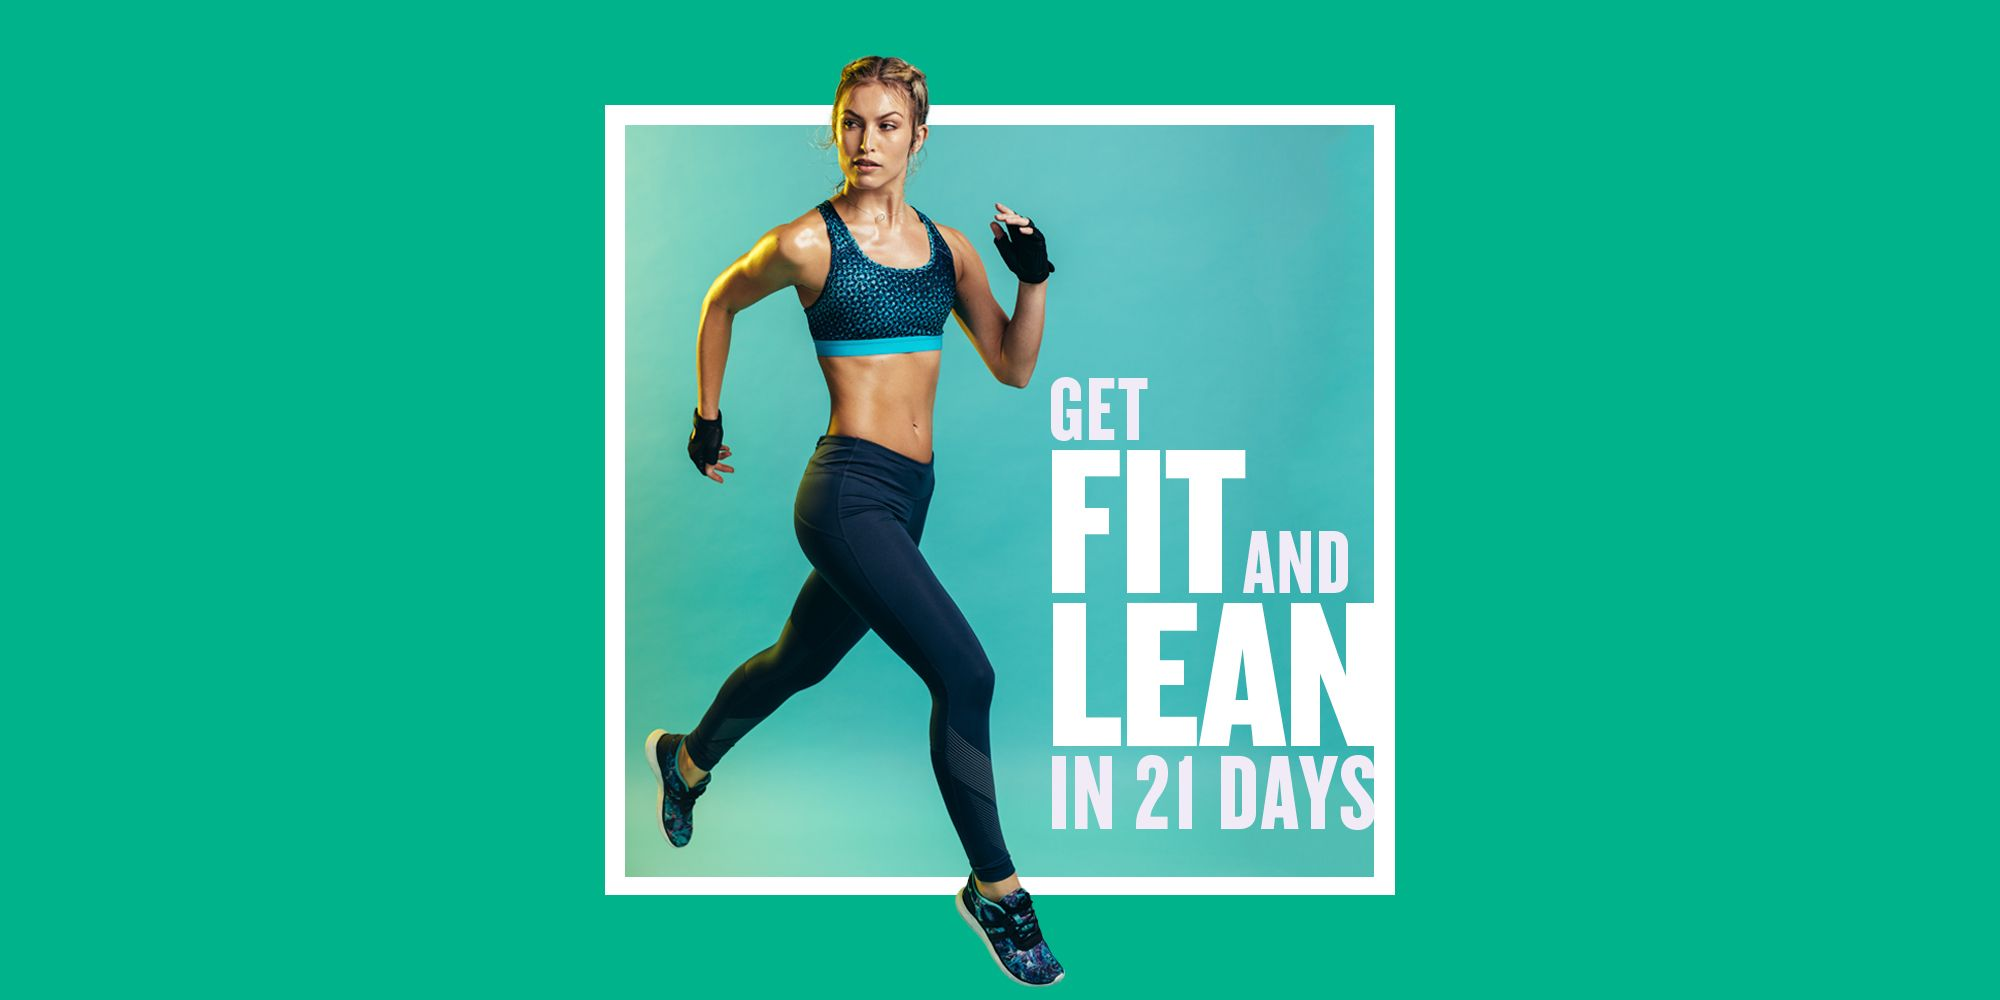 Get Fitter & Leaner in 21 Days with This At-Home Weight-Loss Workout Plan